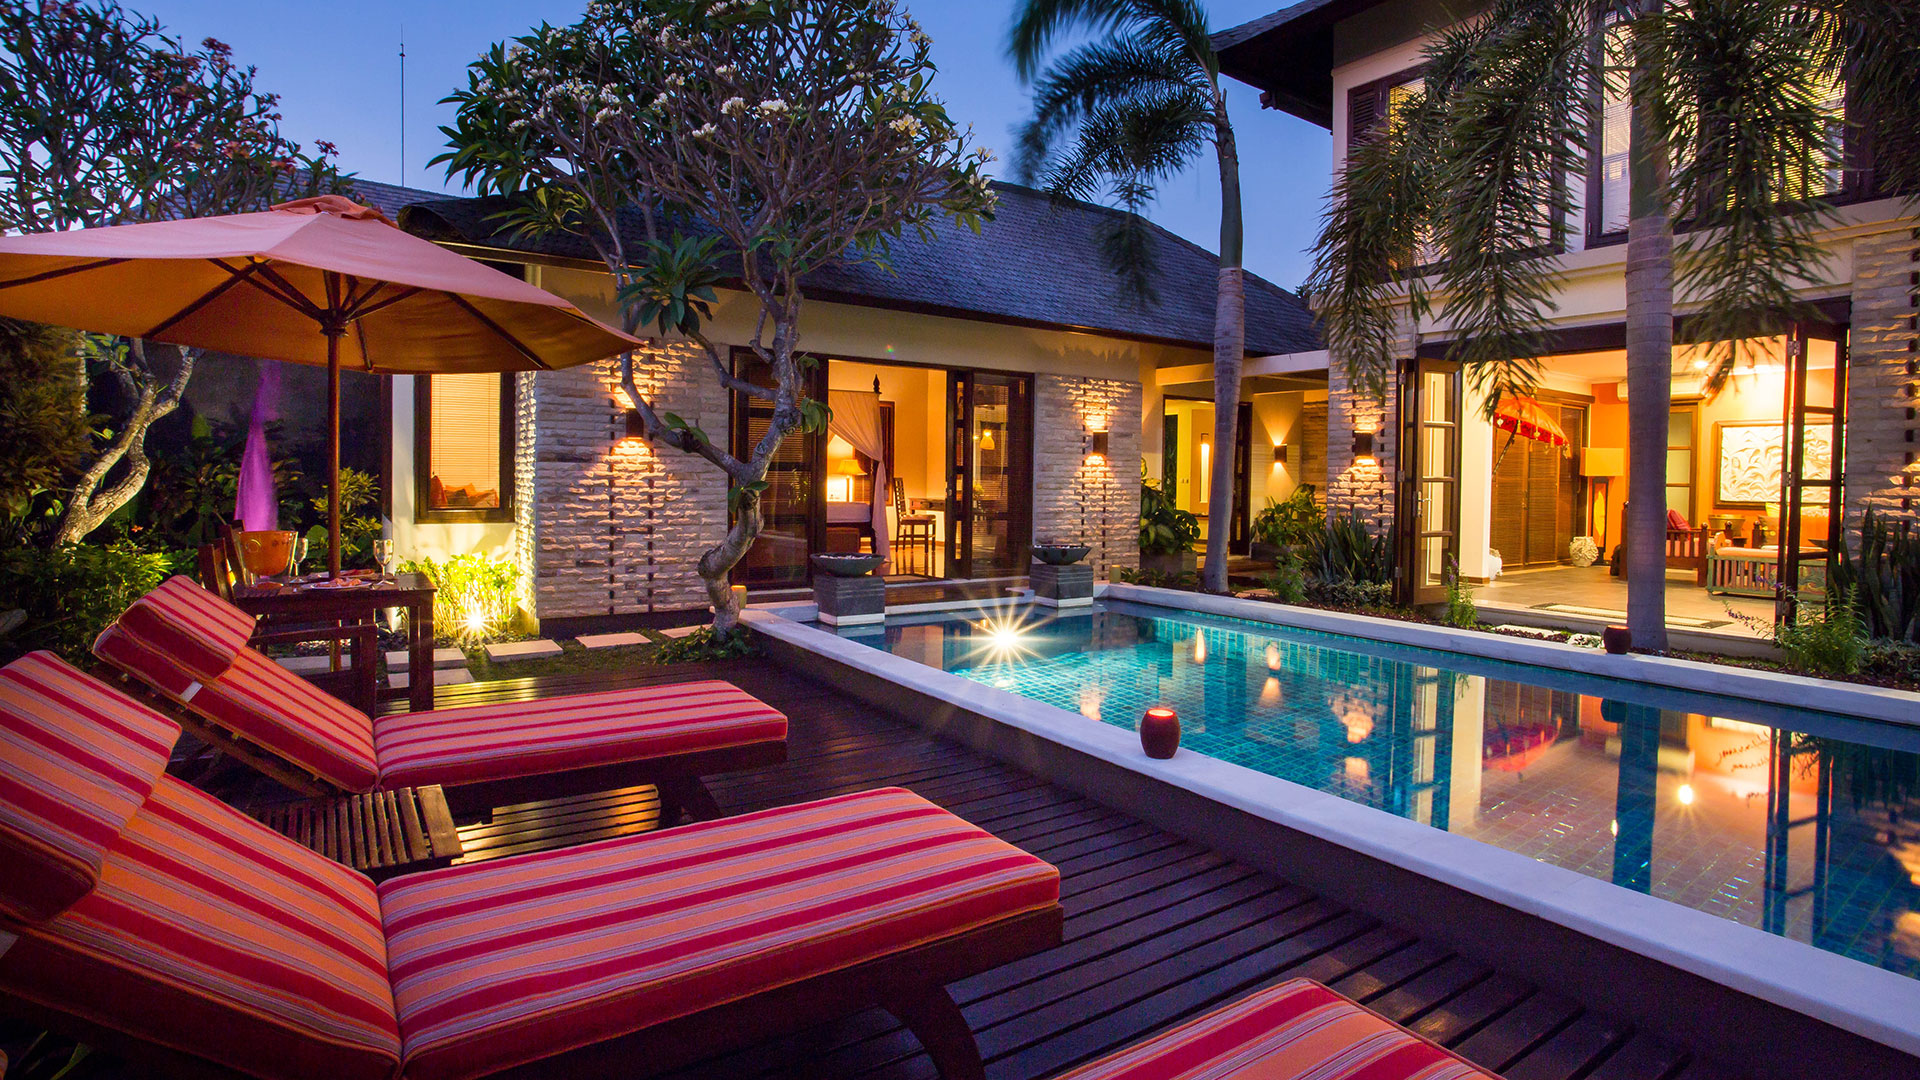 Villa D is one of luxury villas in Bali Baik complex, Seminyak. Owned by American couple, the villa has very beautiful...